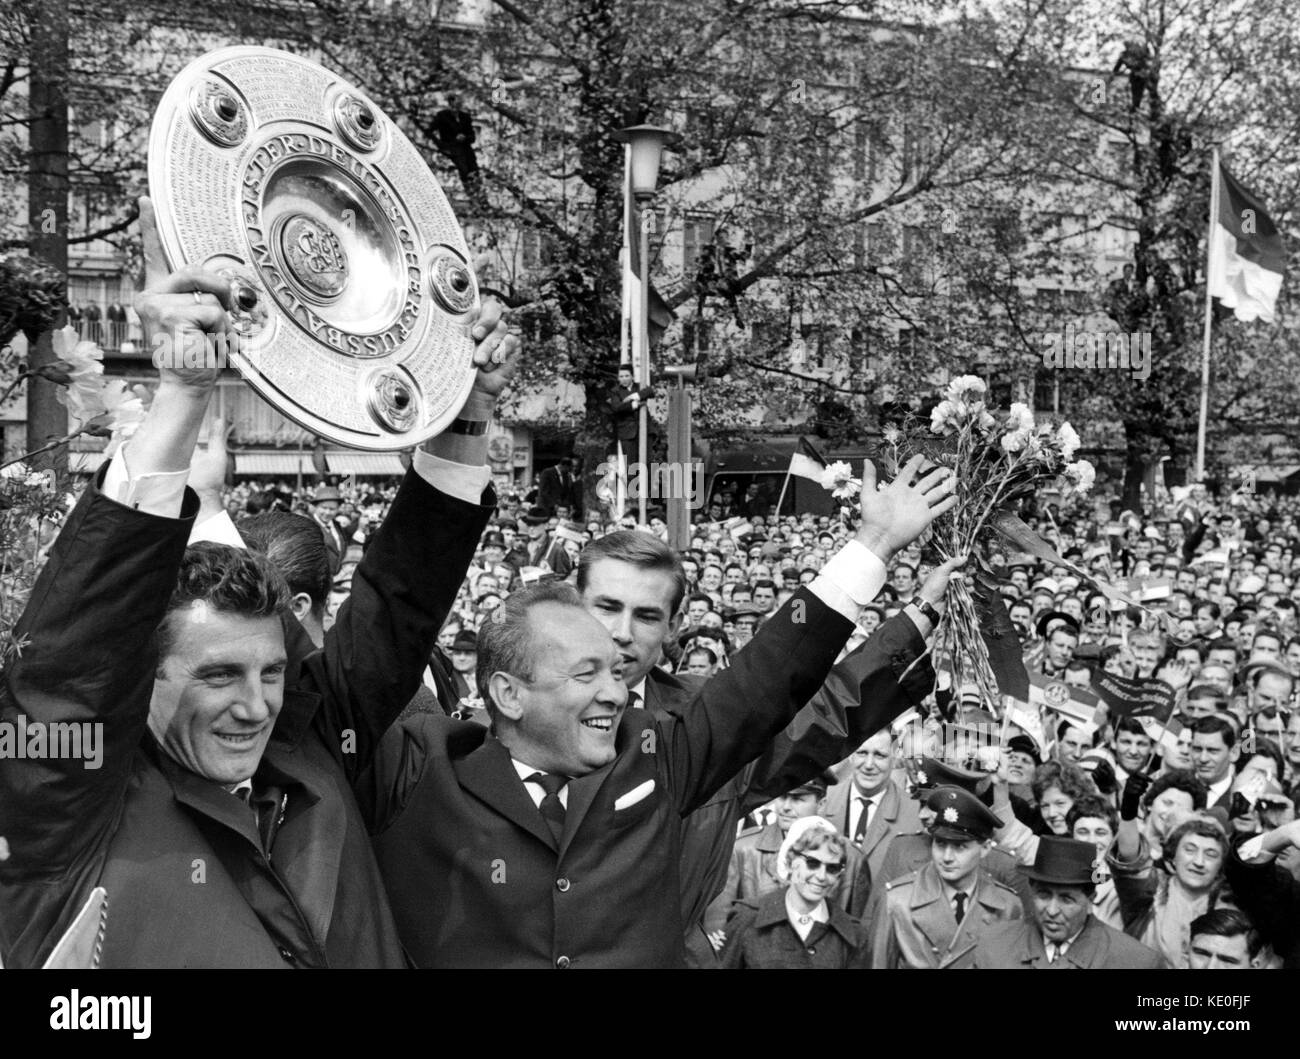 ARCHIVE - The team captain of 1. FC Cologne, Hans SChaefer holds the German Bundesliga trophy in Cologne, 13 May - Stock Image